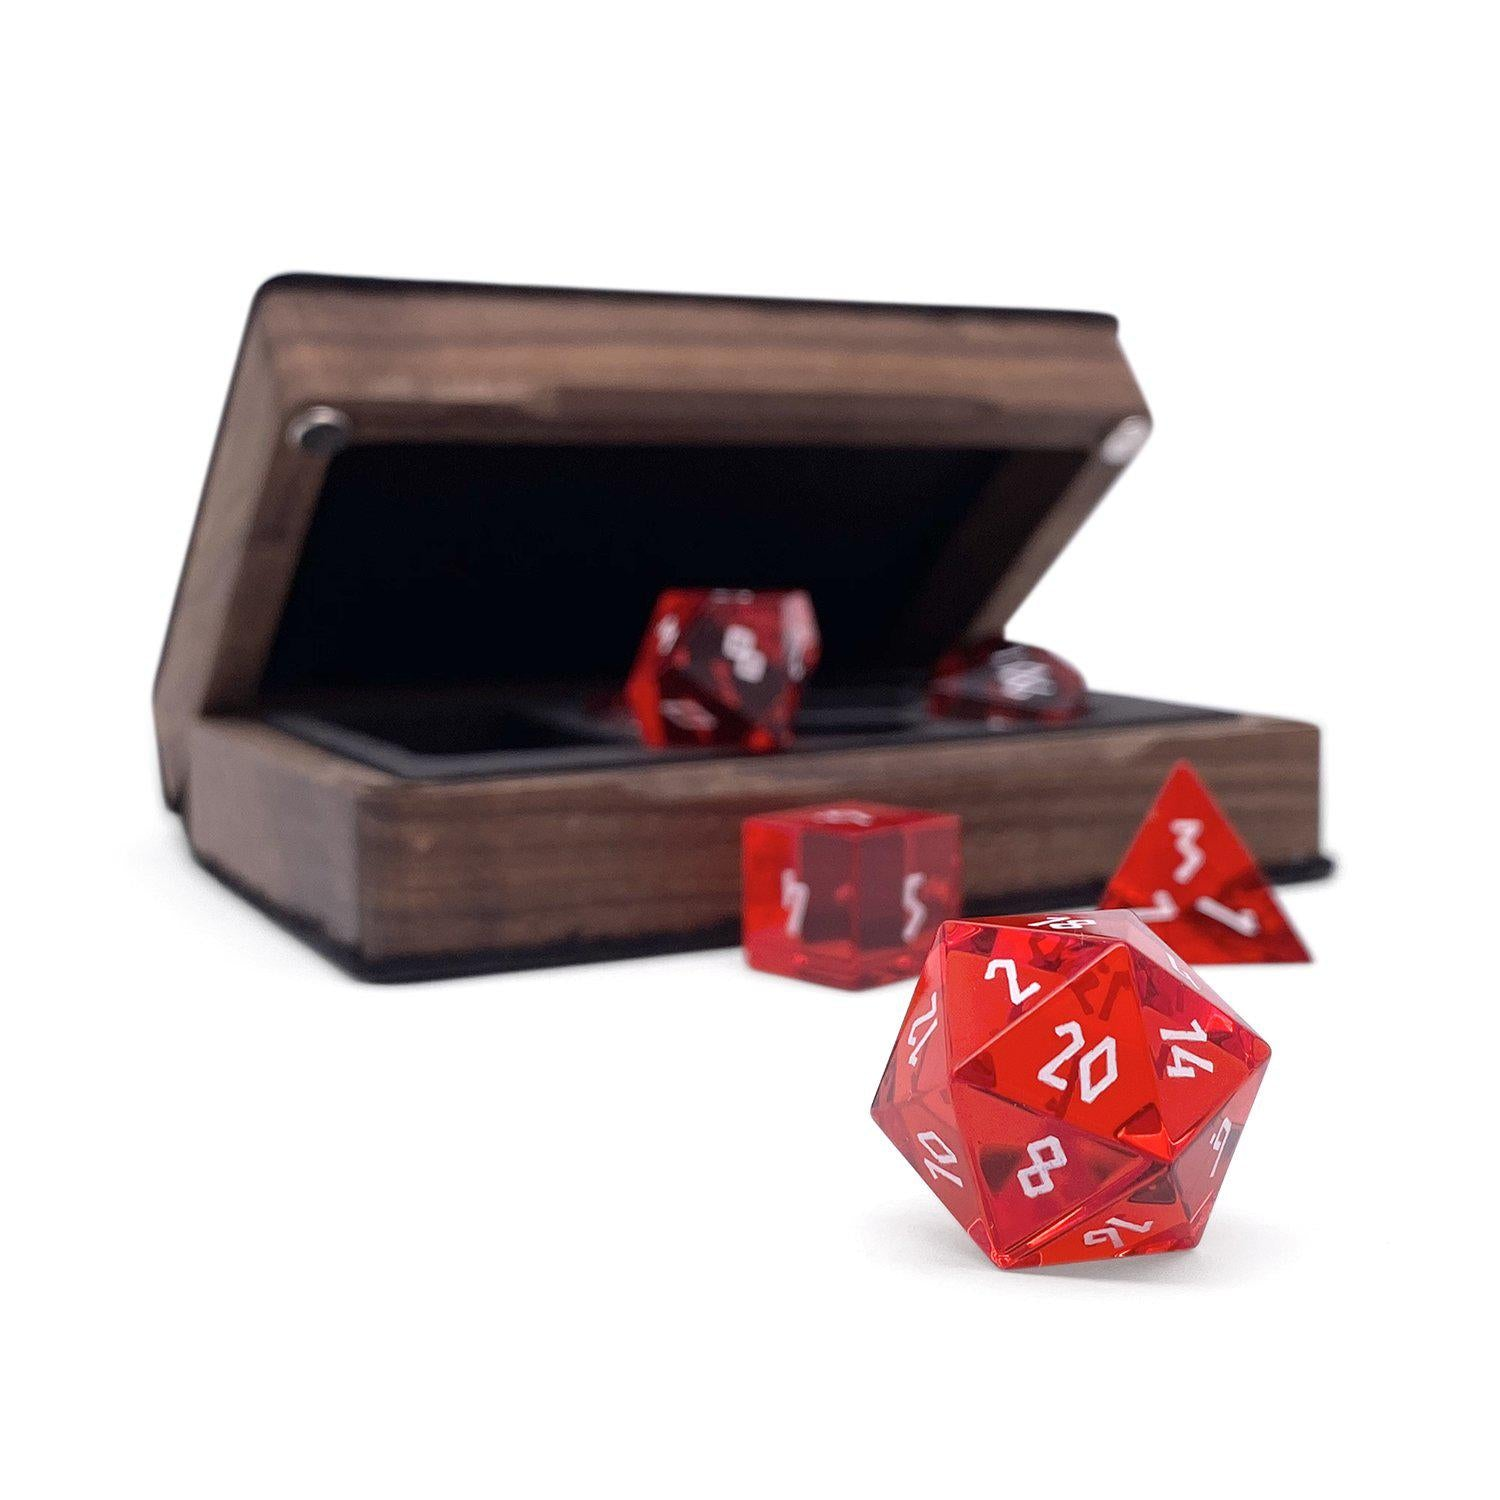 Zircon Glass - Ruby - 7 Piece Glass Dice Set